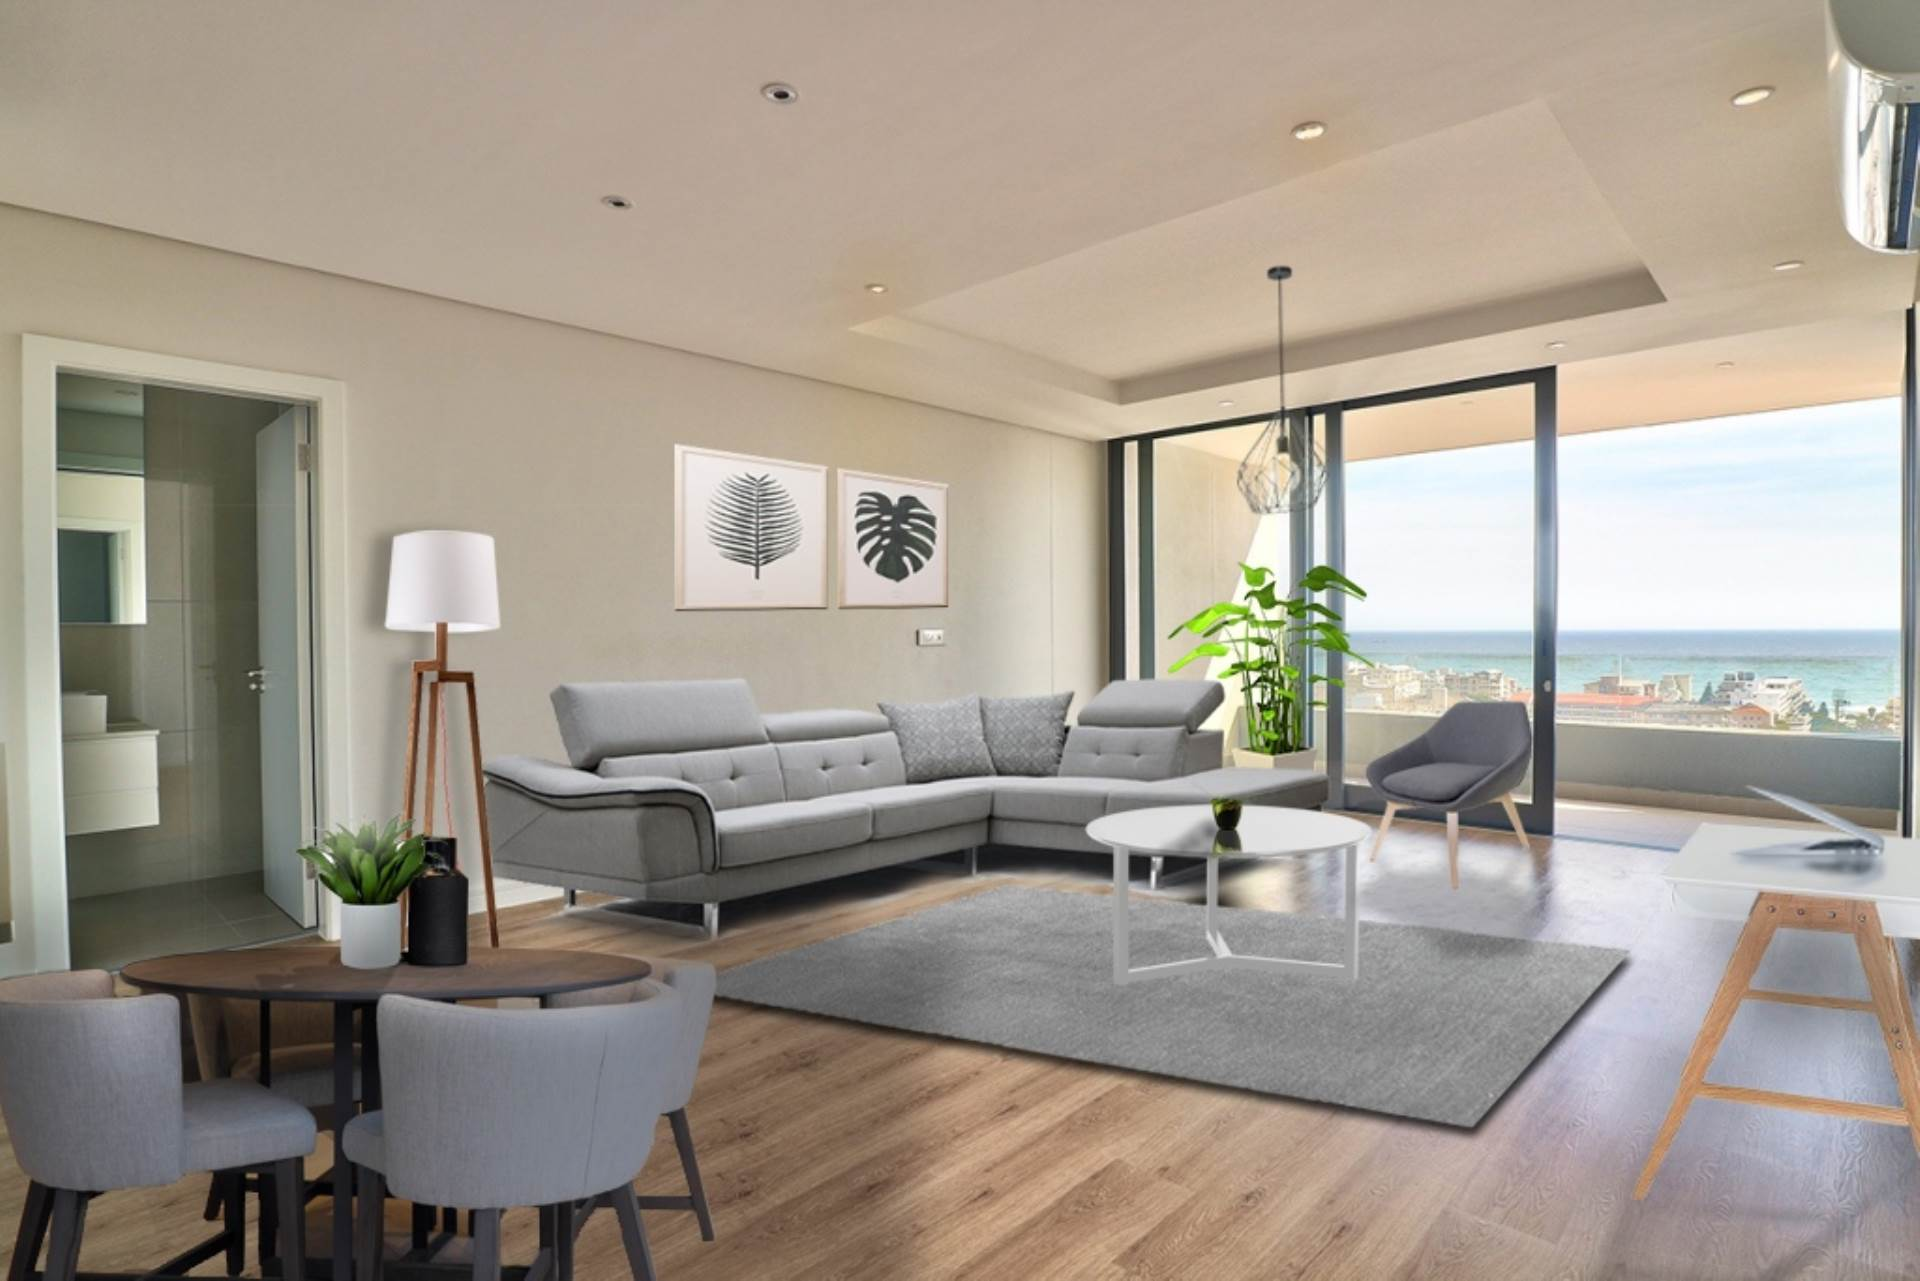 2 BedroomApartment For Sale In Sea Point